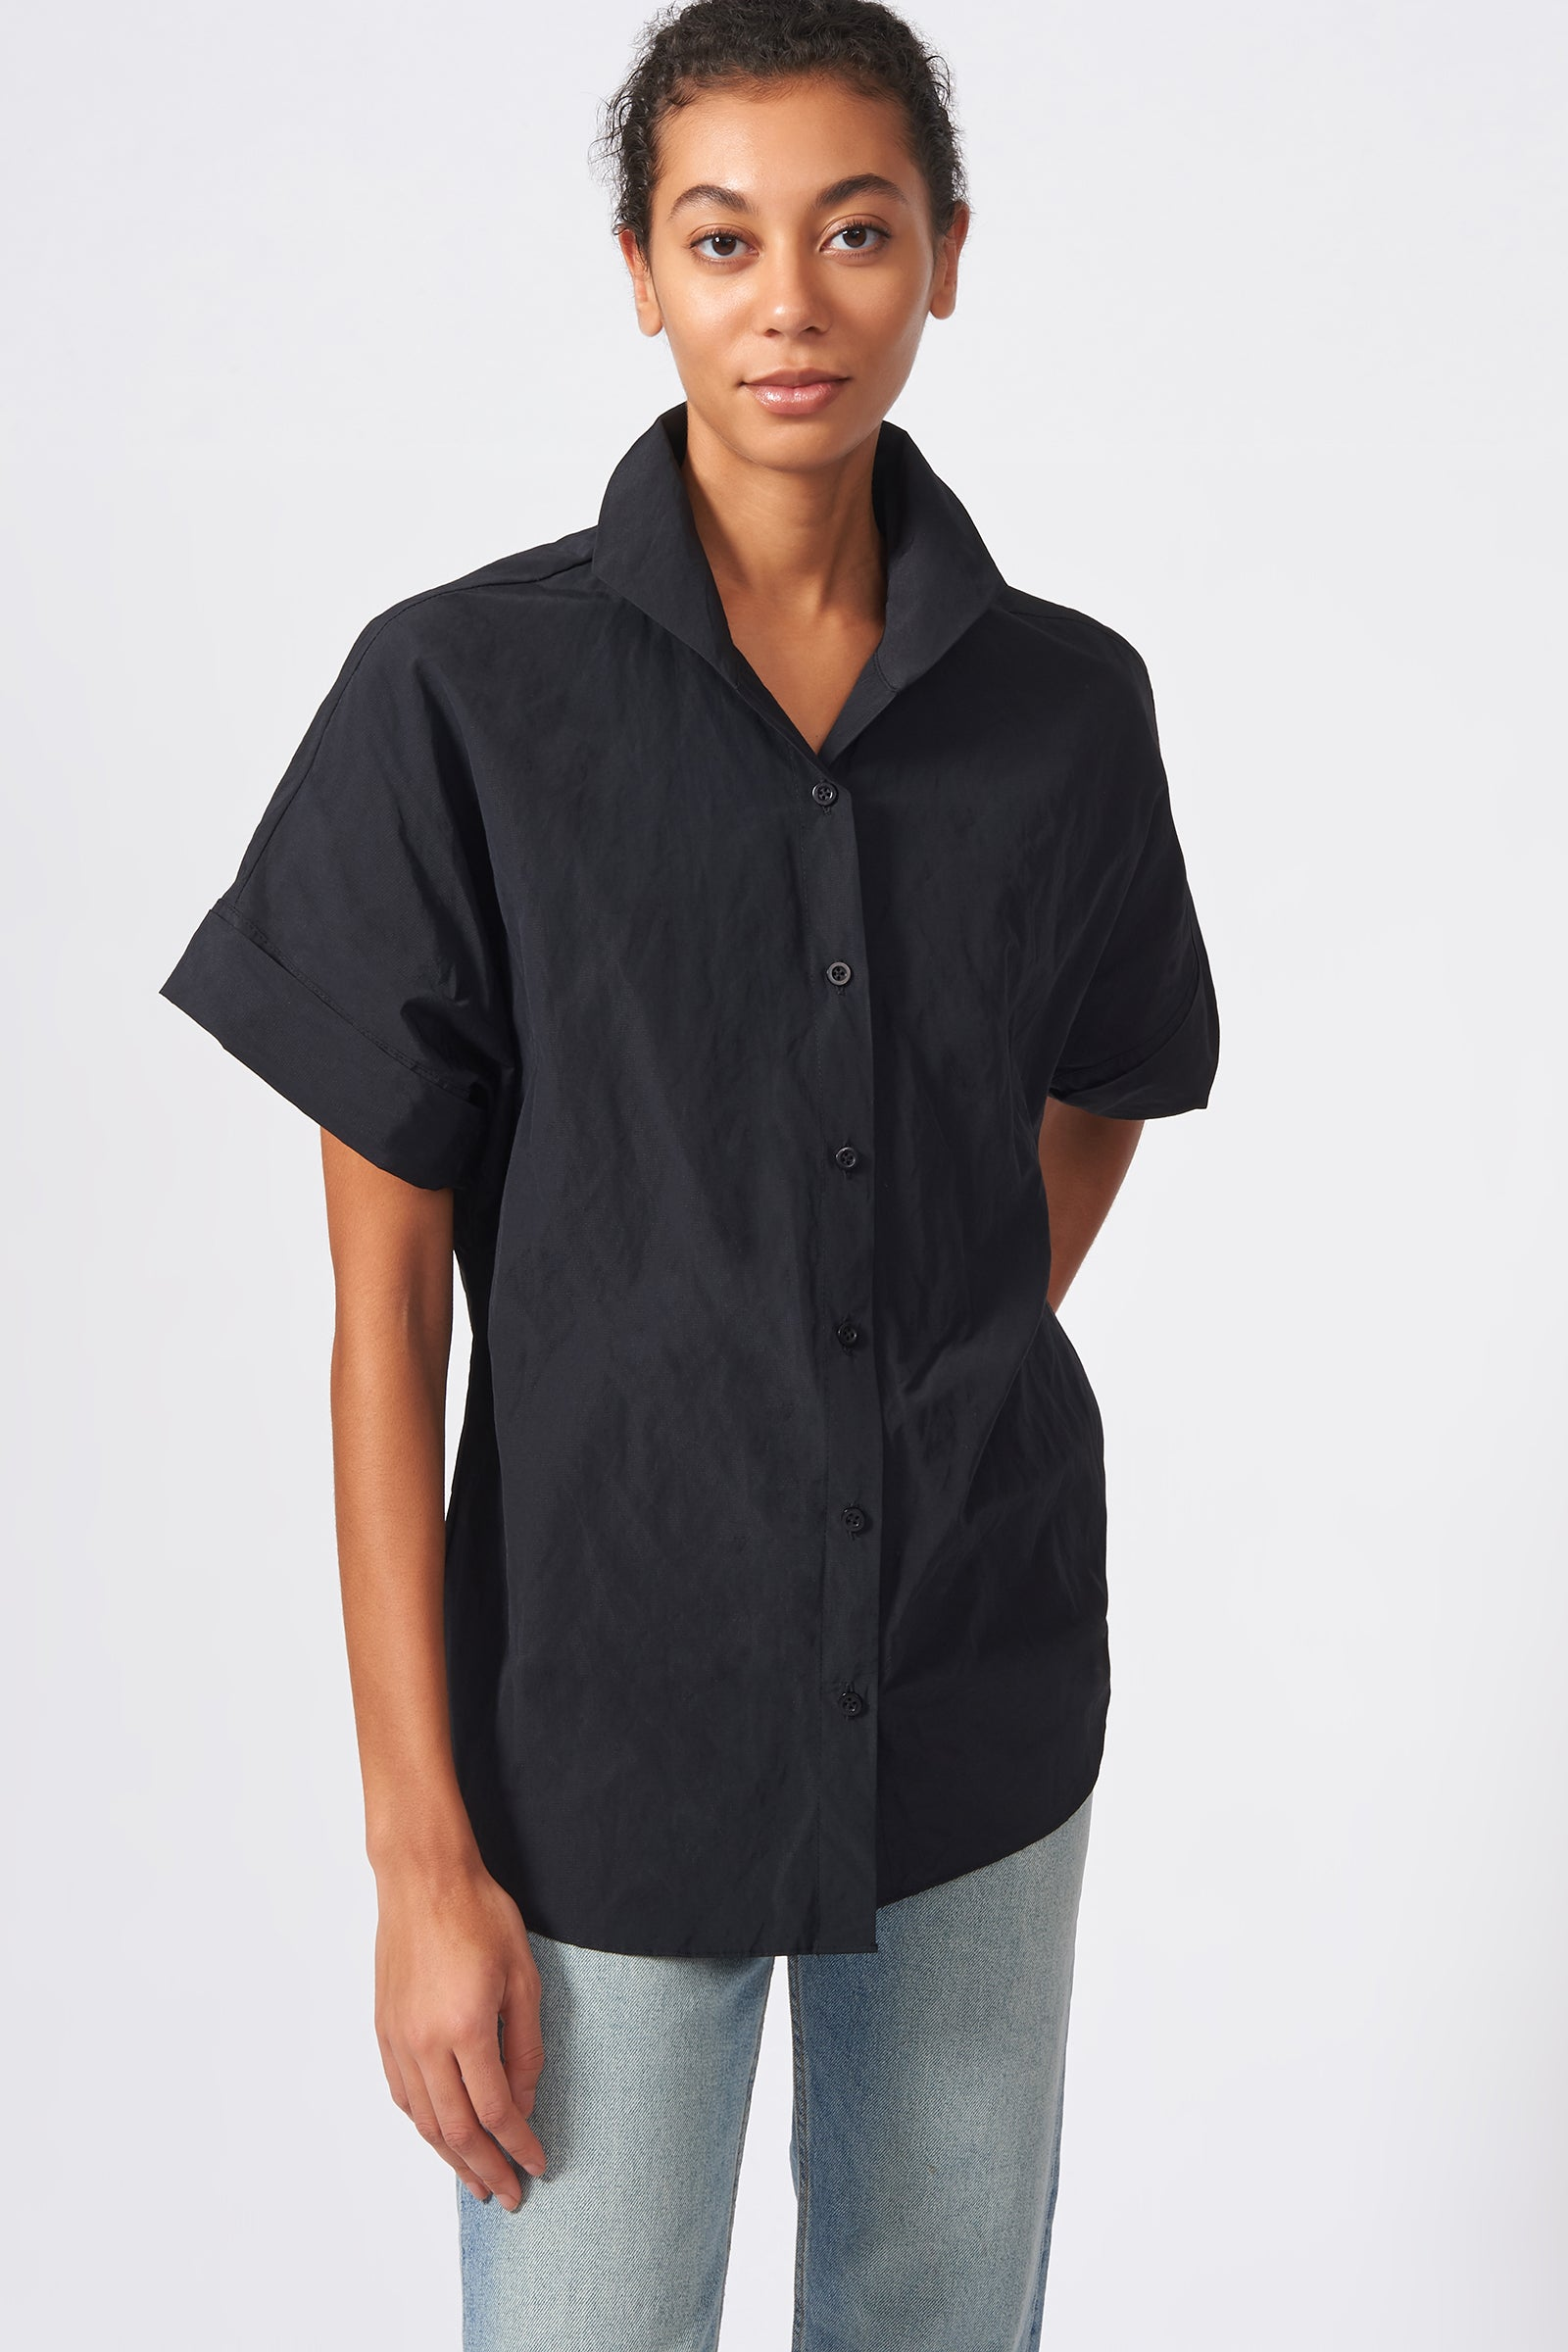 Kal Rieman Kimono Shirt in Black Cotton Nylon on Model Front View